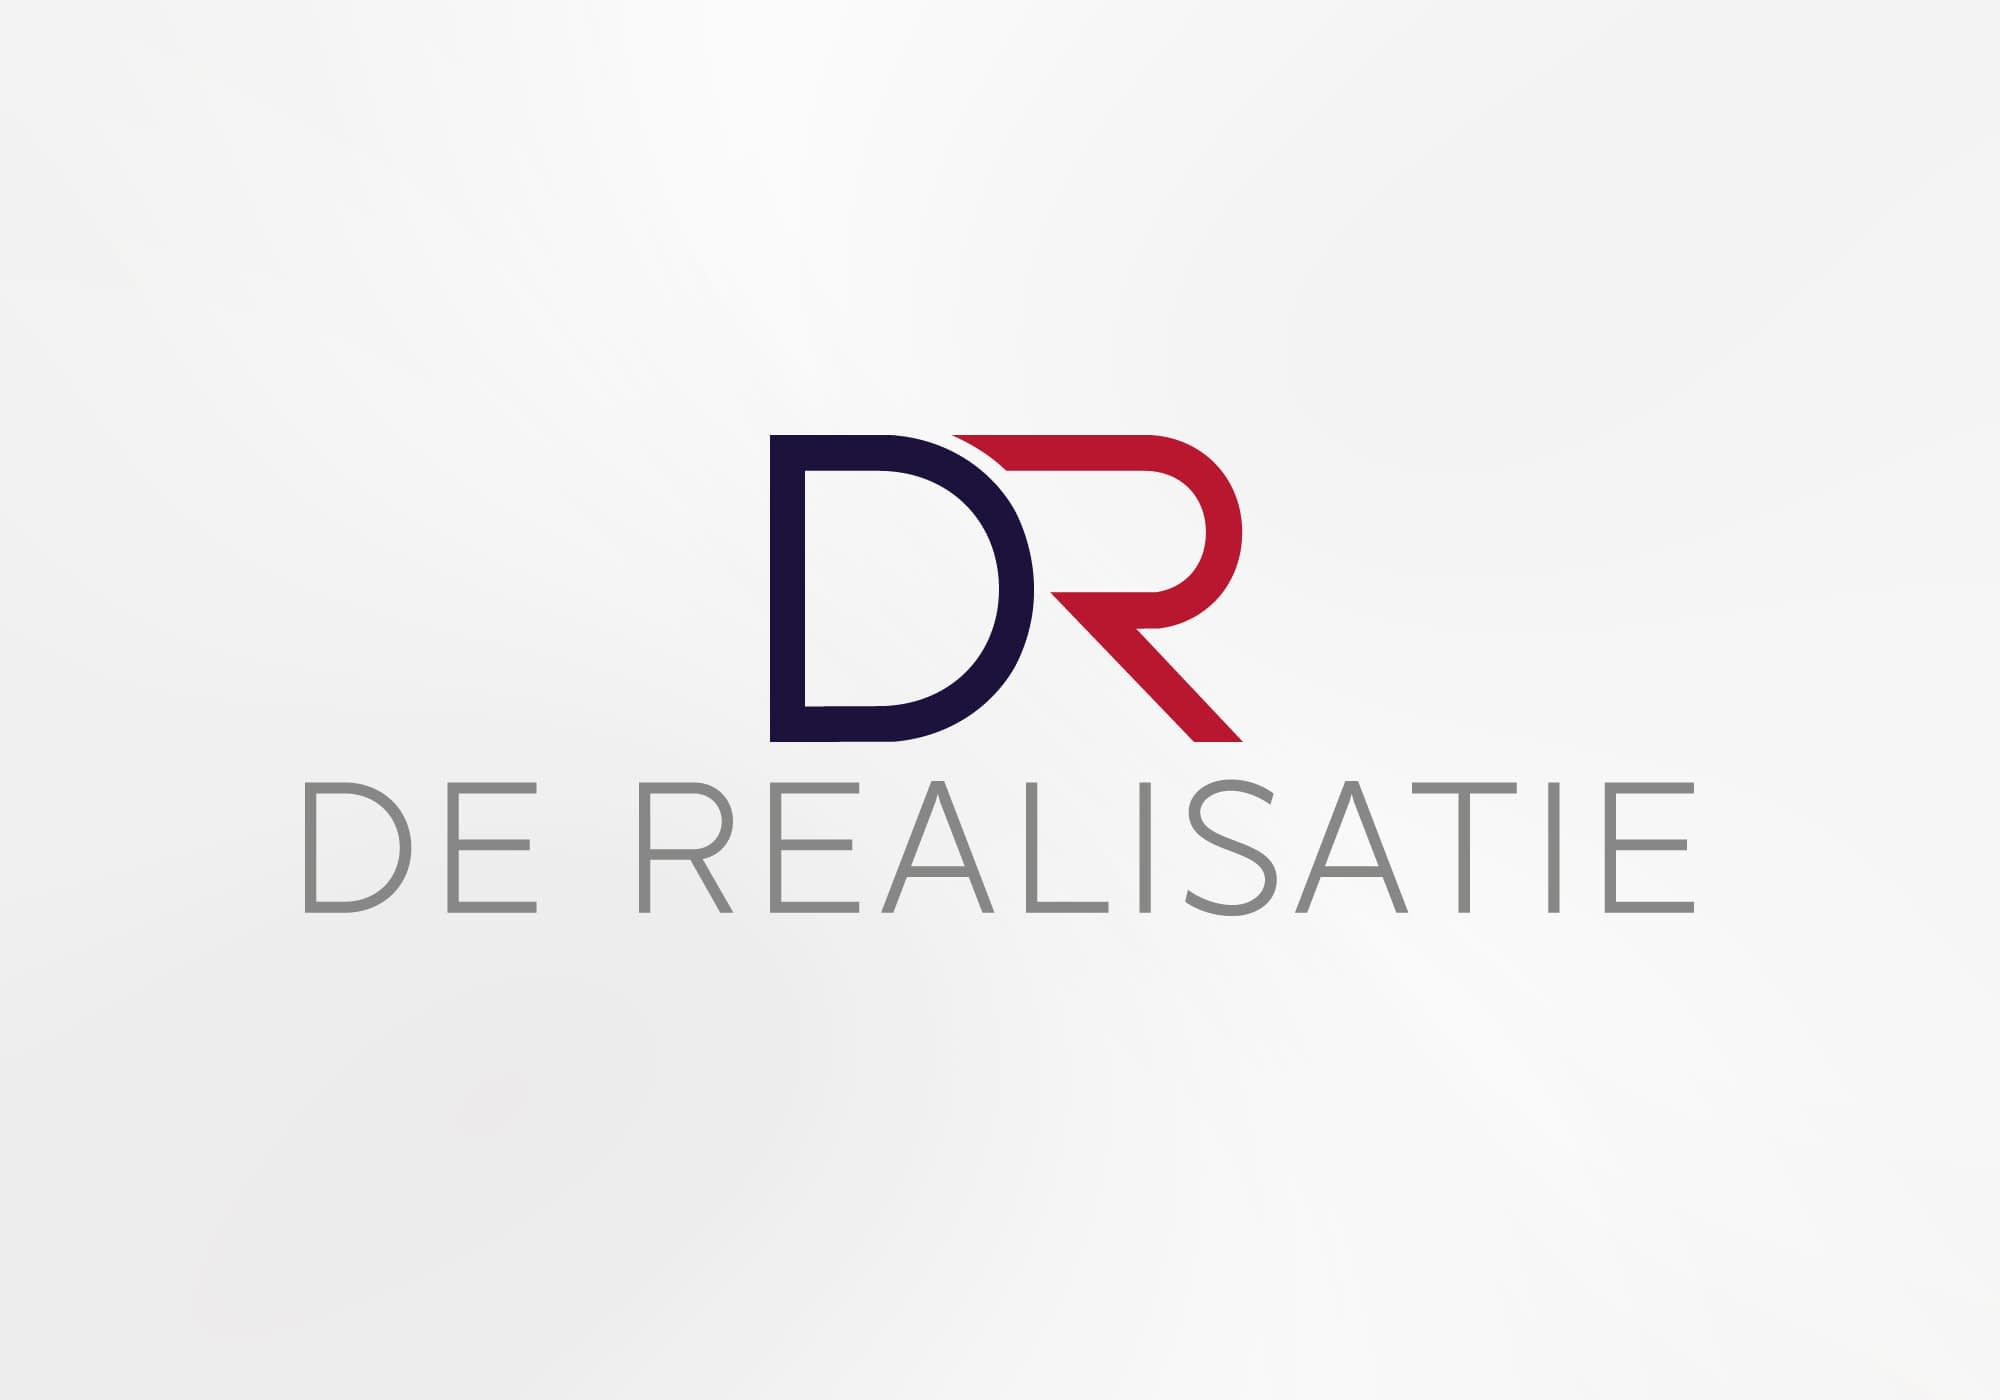 logo-de-realisatie-enduredesign